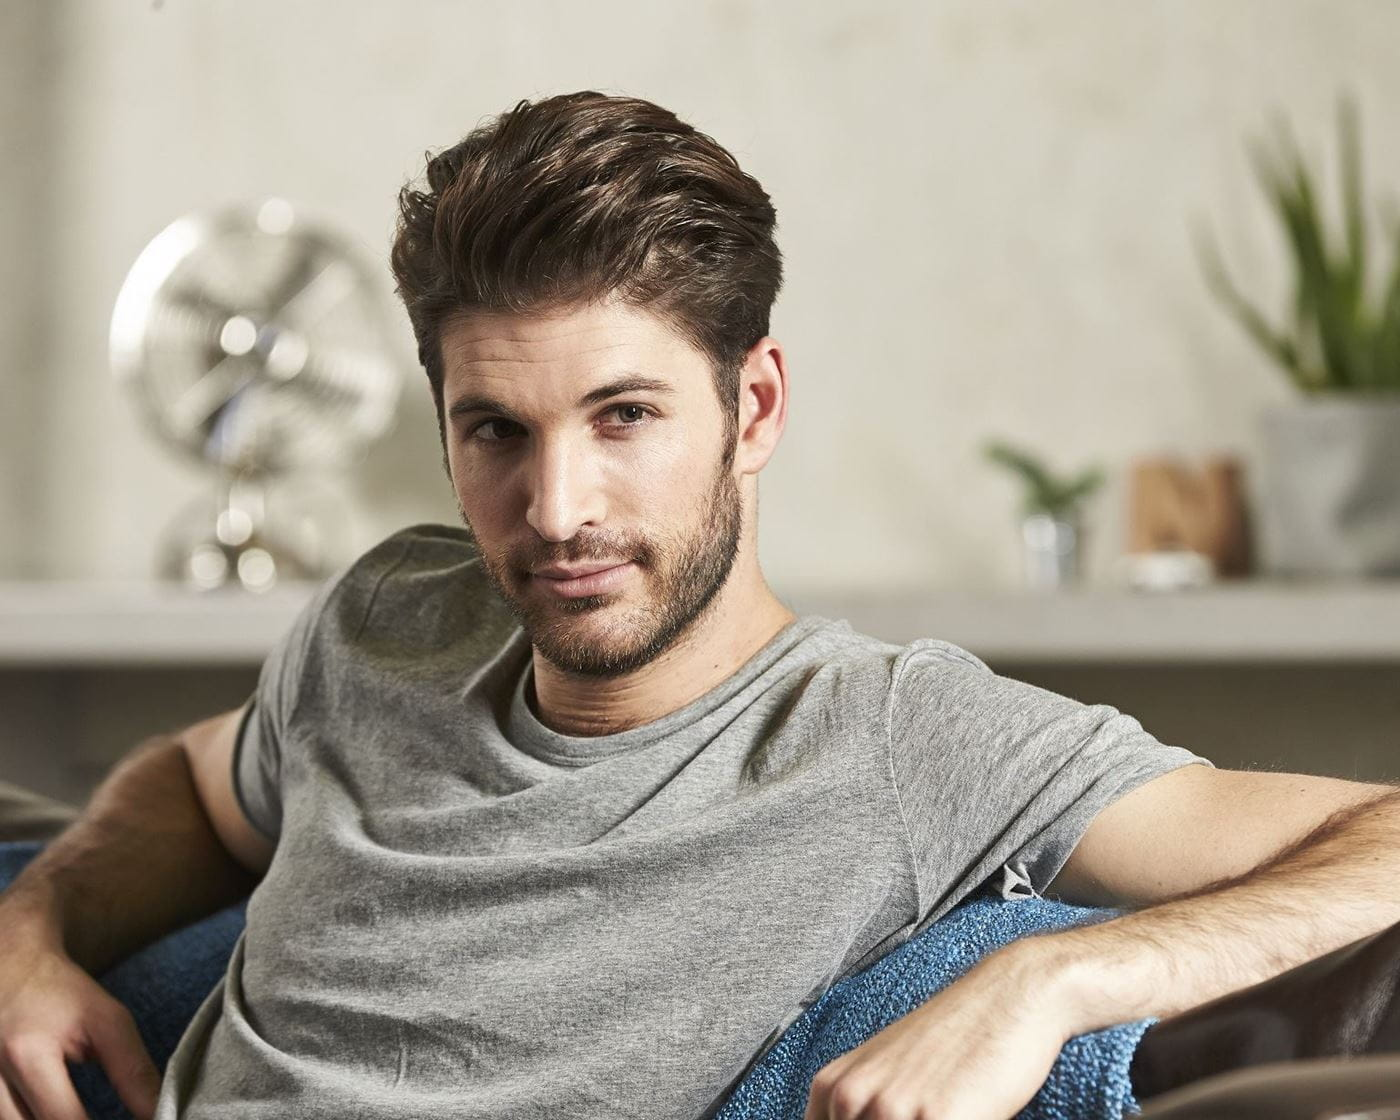 What causes an itchy beard?